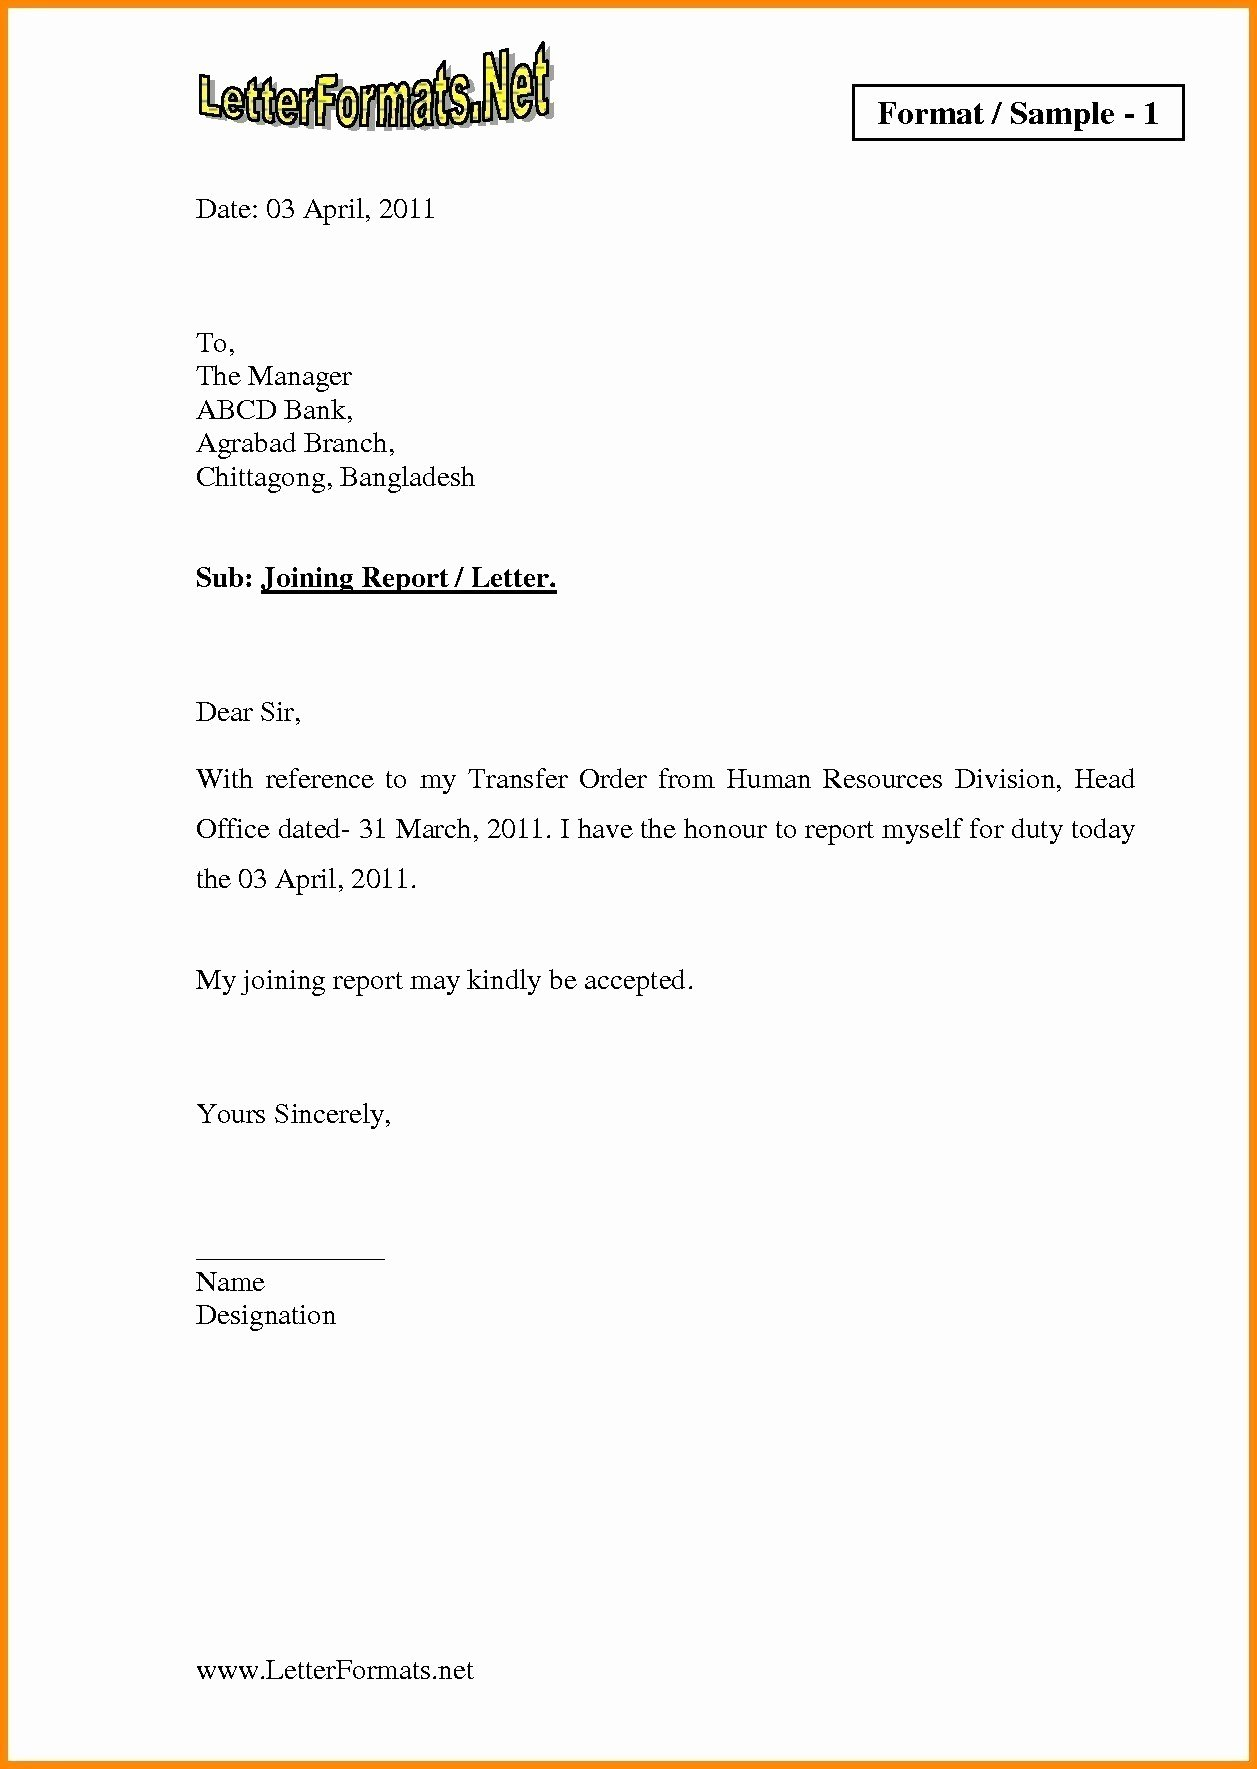 Maternity Leave Resignation Letter Awesome Valid Template Letter Resignation Following Maternity